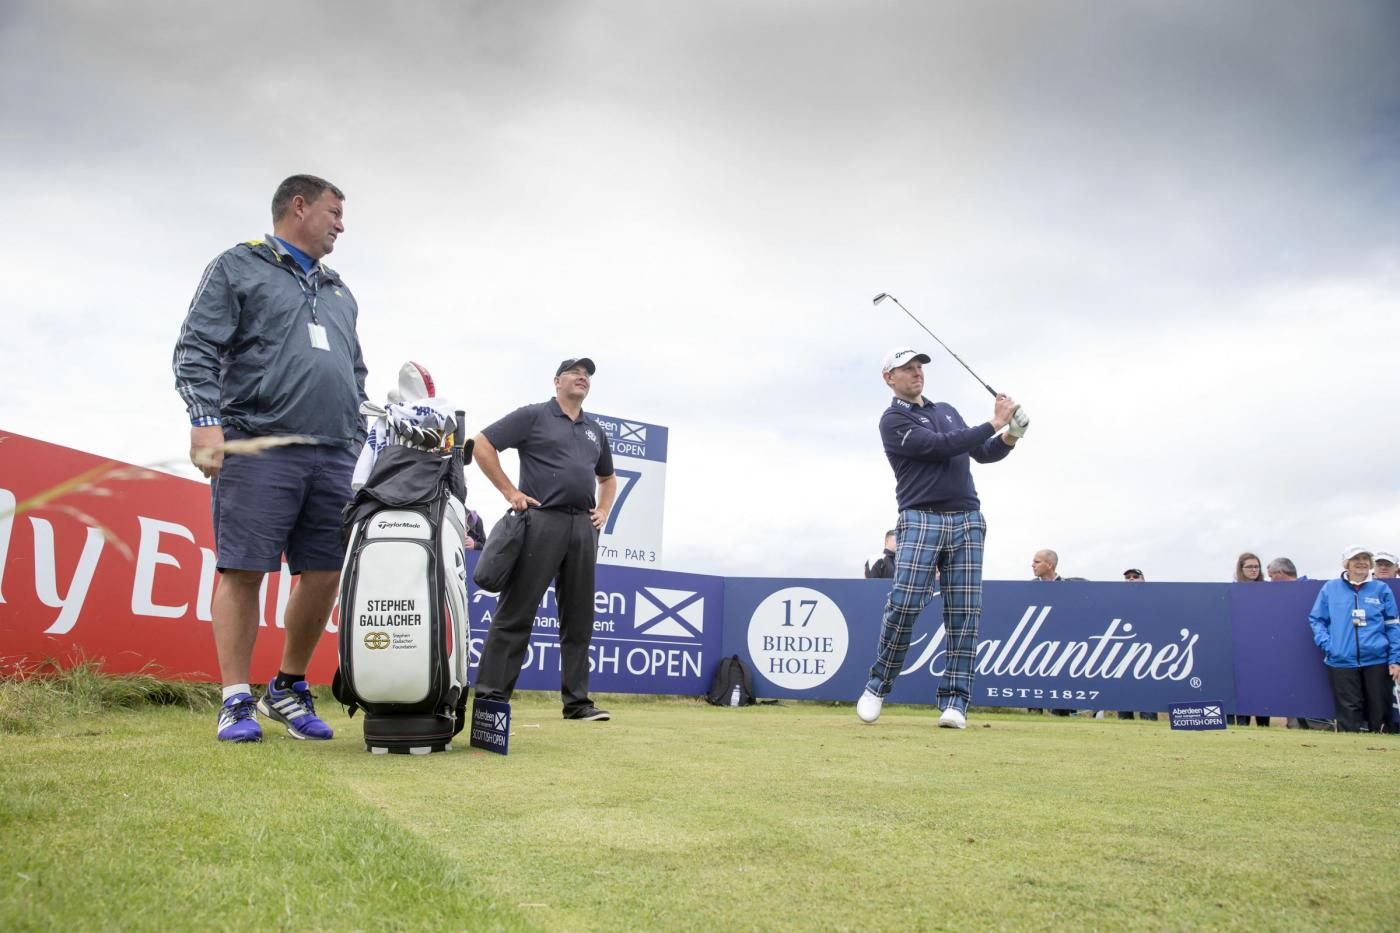 Scotland's Stephen Gallacher hits his tee shot at the 17th hole during a preview day ahead of the Scottish Open at Gullane Golf Club, East Lothian. PRESS ASSOCIATION Photo. Picture date: Wednesday July 8, 2015. See PA story GOLF Gullane. Photo credit should read: Kenny Smith/PA Wire. RESTRICTIONS: Editorial use only. No commercial use. No false commercial association. No video emulation. No manipulation of images.